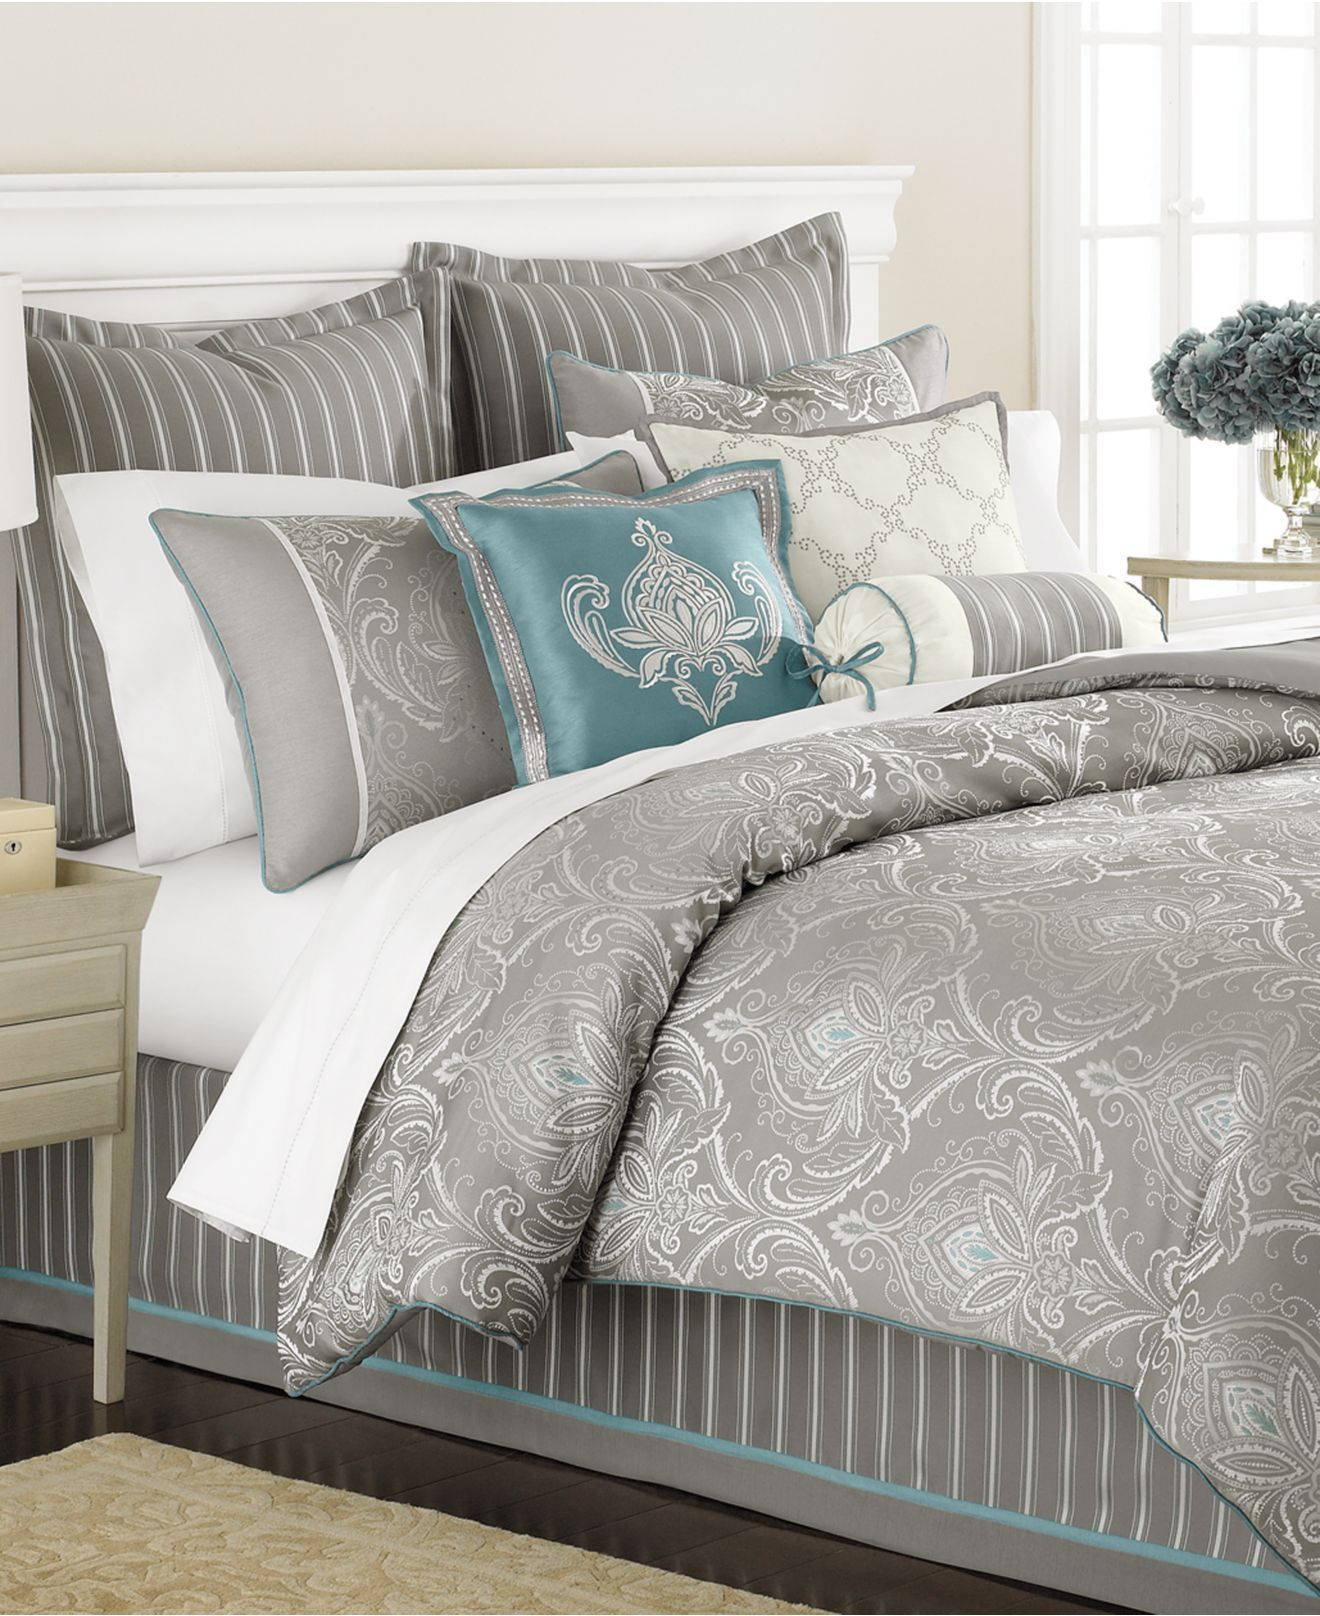 Martha stewart collection bedding briercrest 9 piece comforter set king bed master bedroom Queen size bed and mattress set